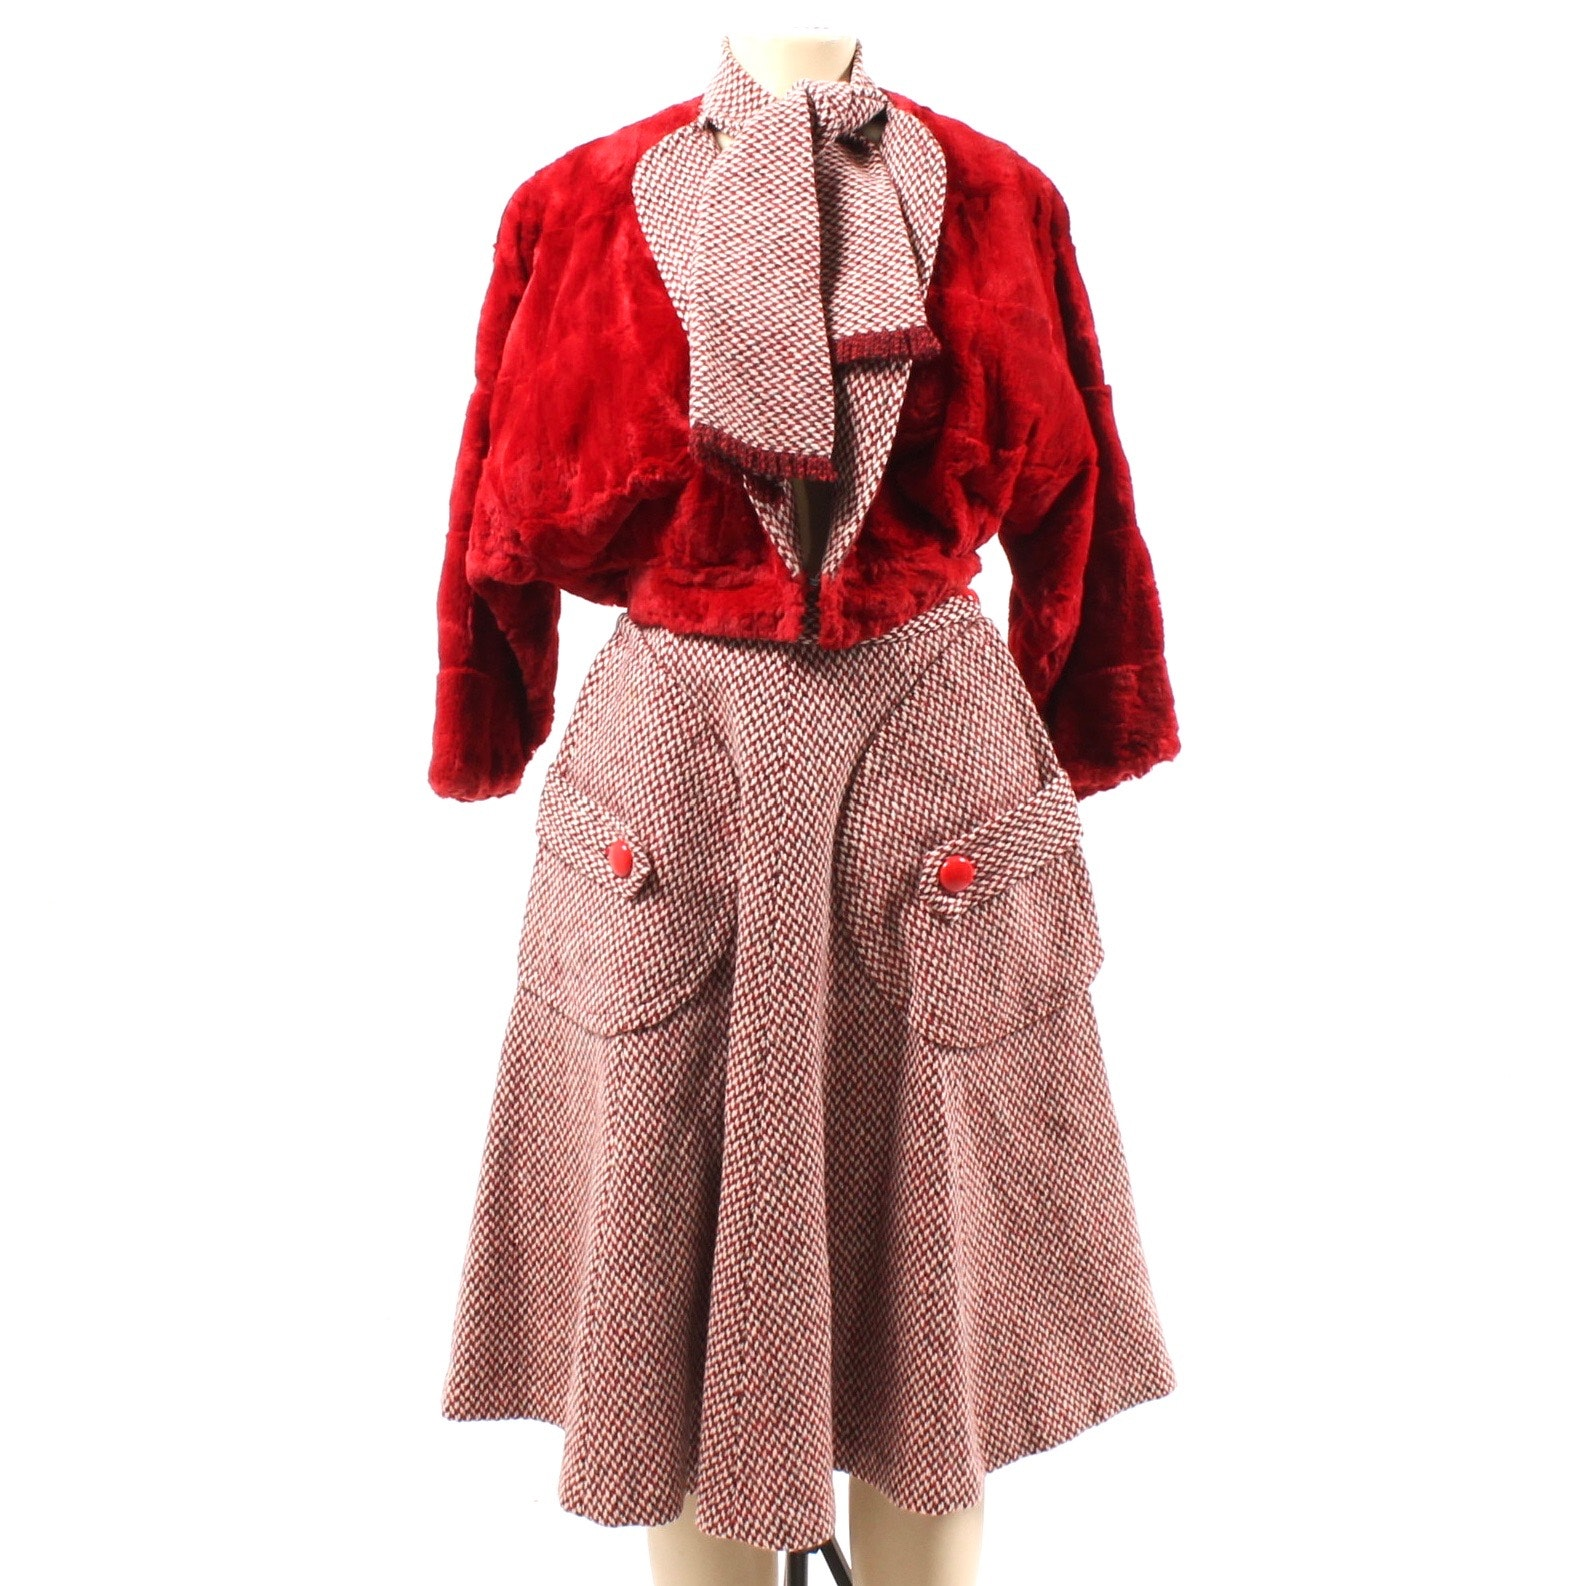 Vintage Roland Originals Dyed Sheared Rabbit Coat and Wool Tweed Skirt Ensemble